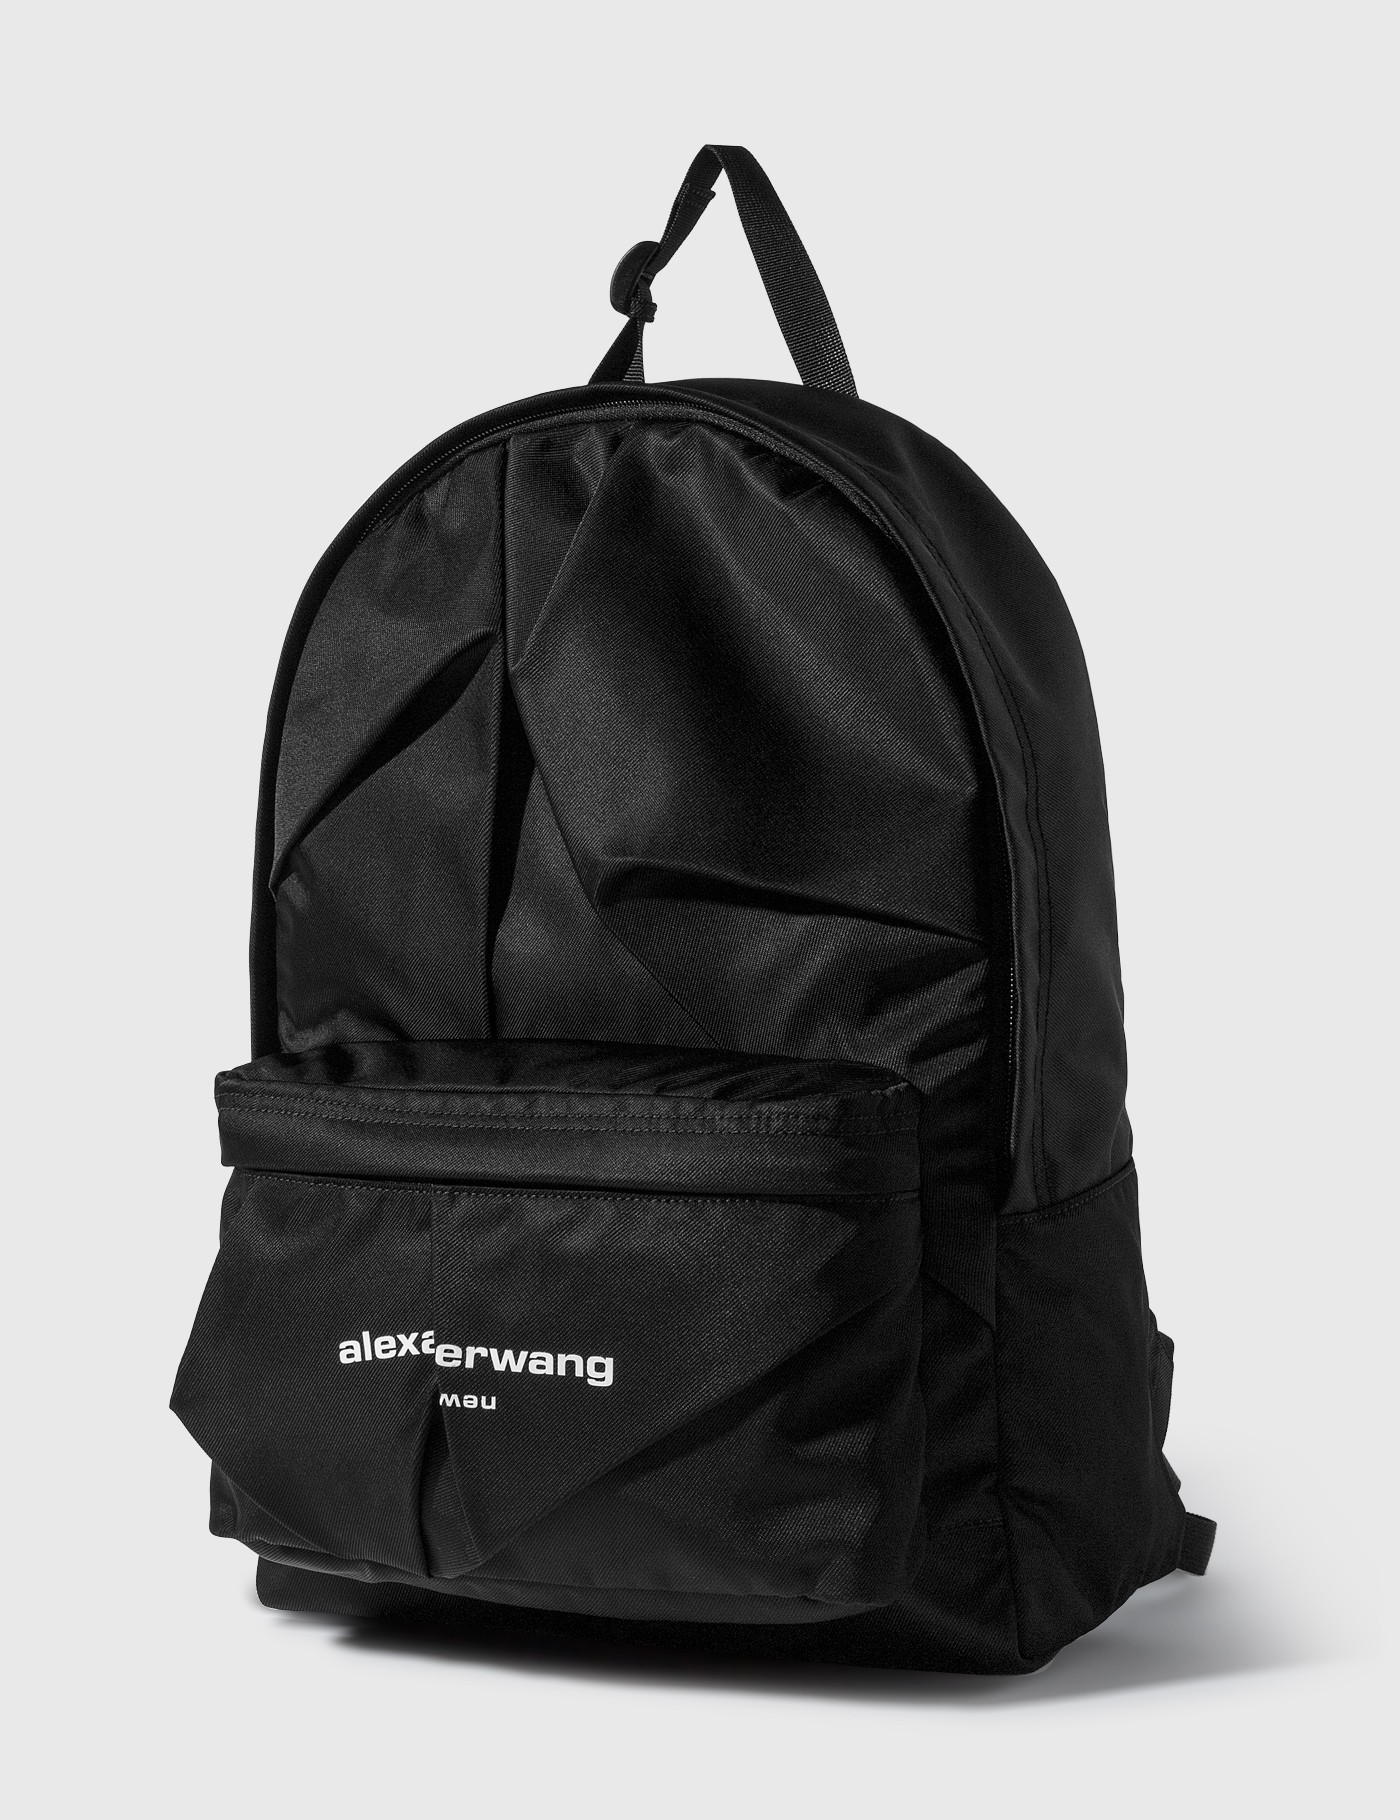 Alexander Wang WANGSPORT BACKPACK